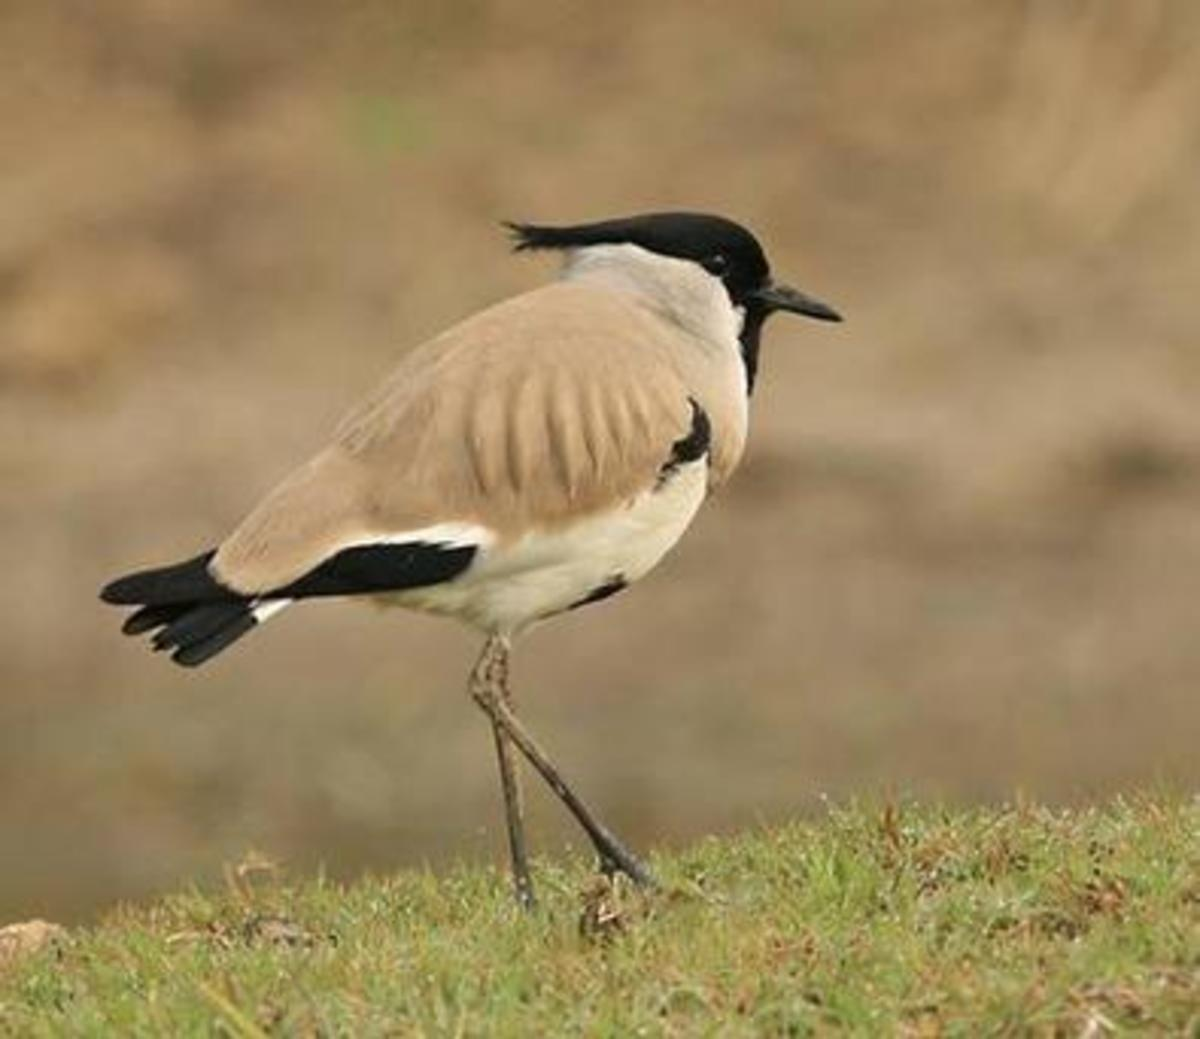 There are over 250 species of birds in Bandhavgarh National Park